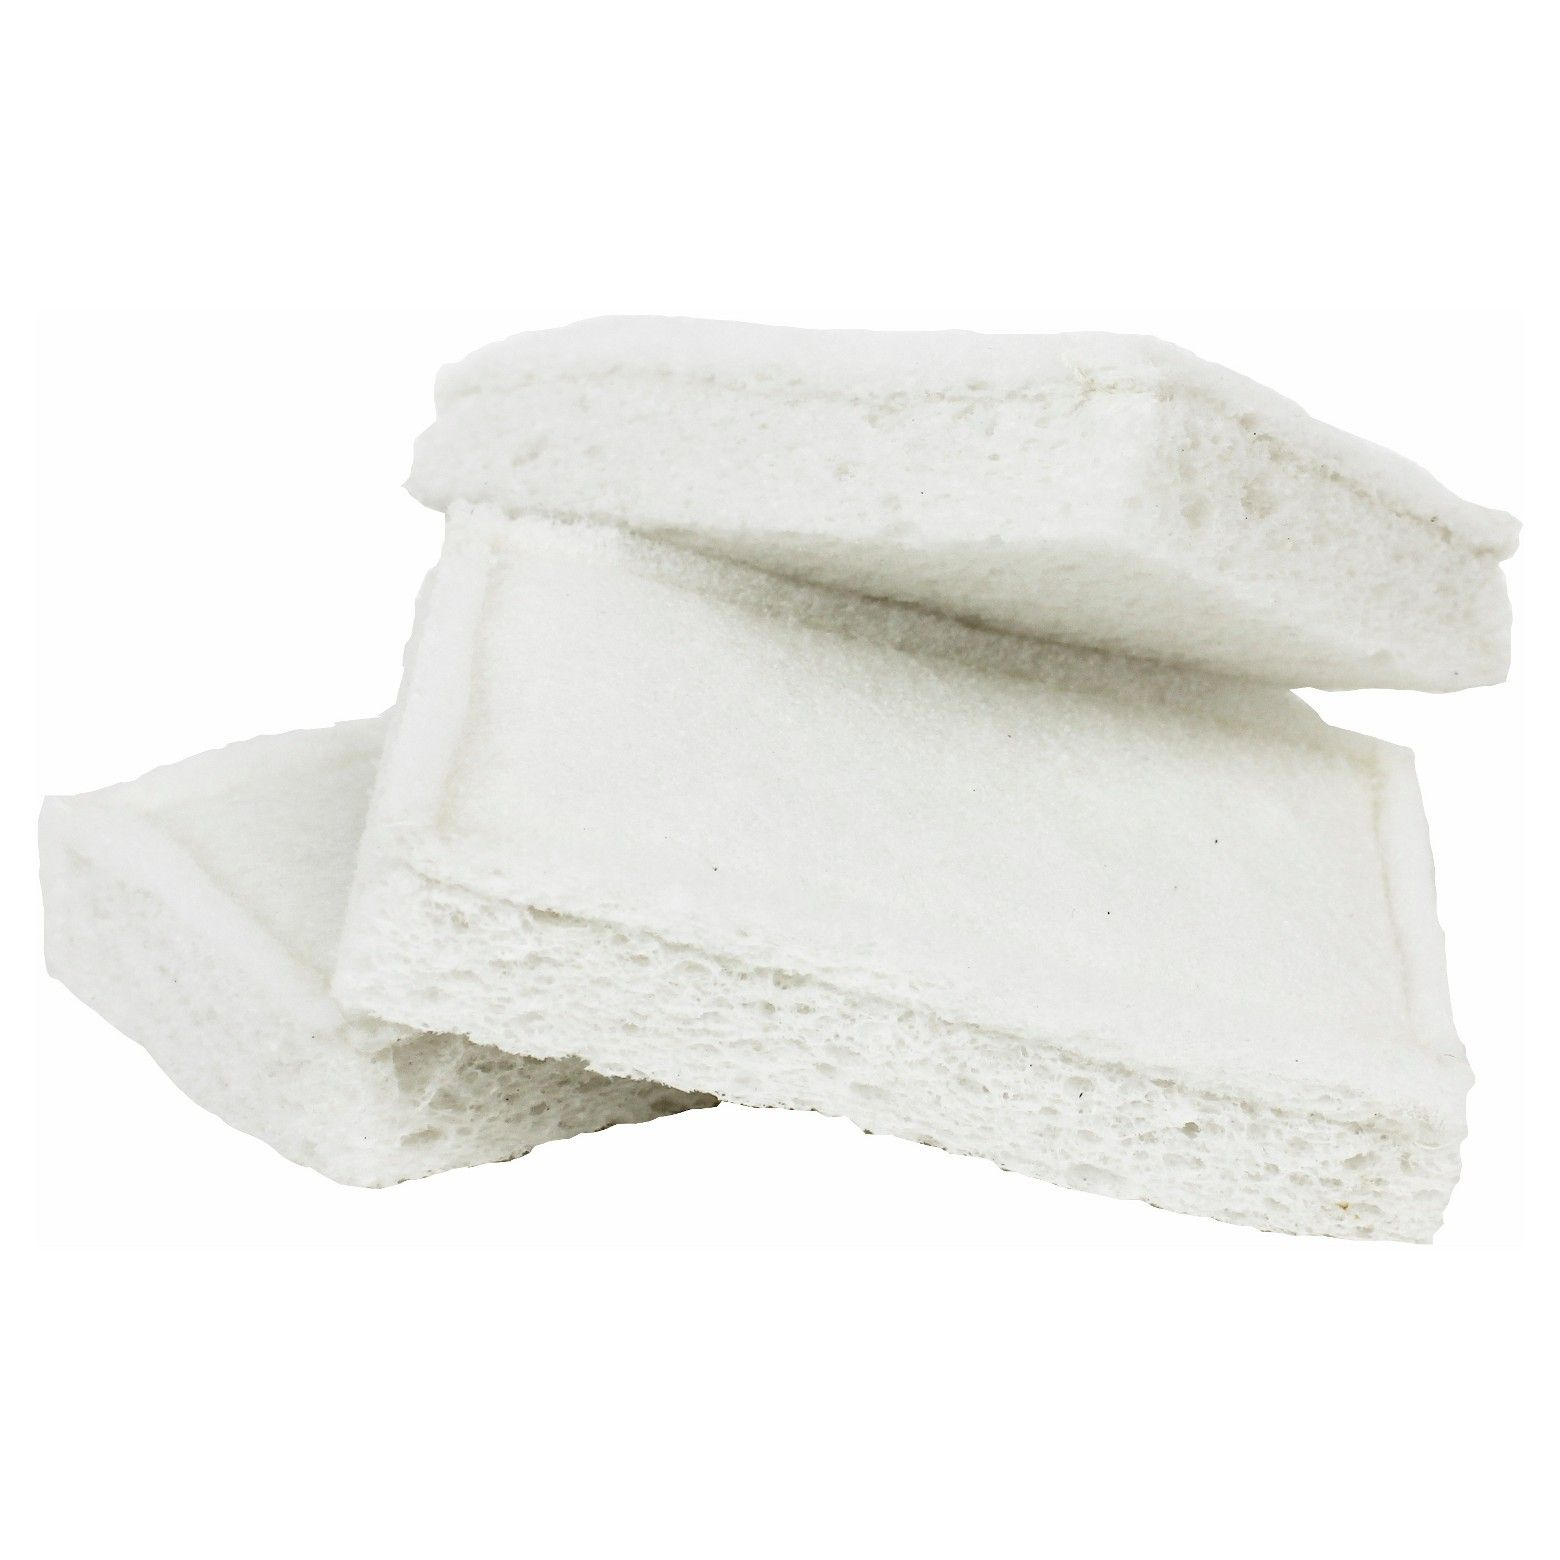 Twist White Scrub Sponge - 3 Count | Target and Cookware